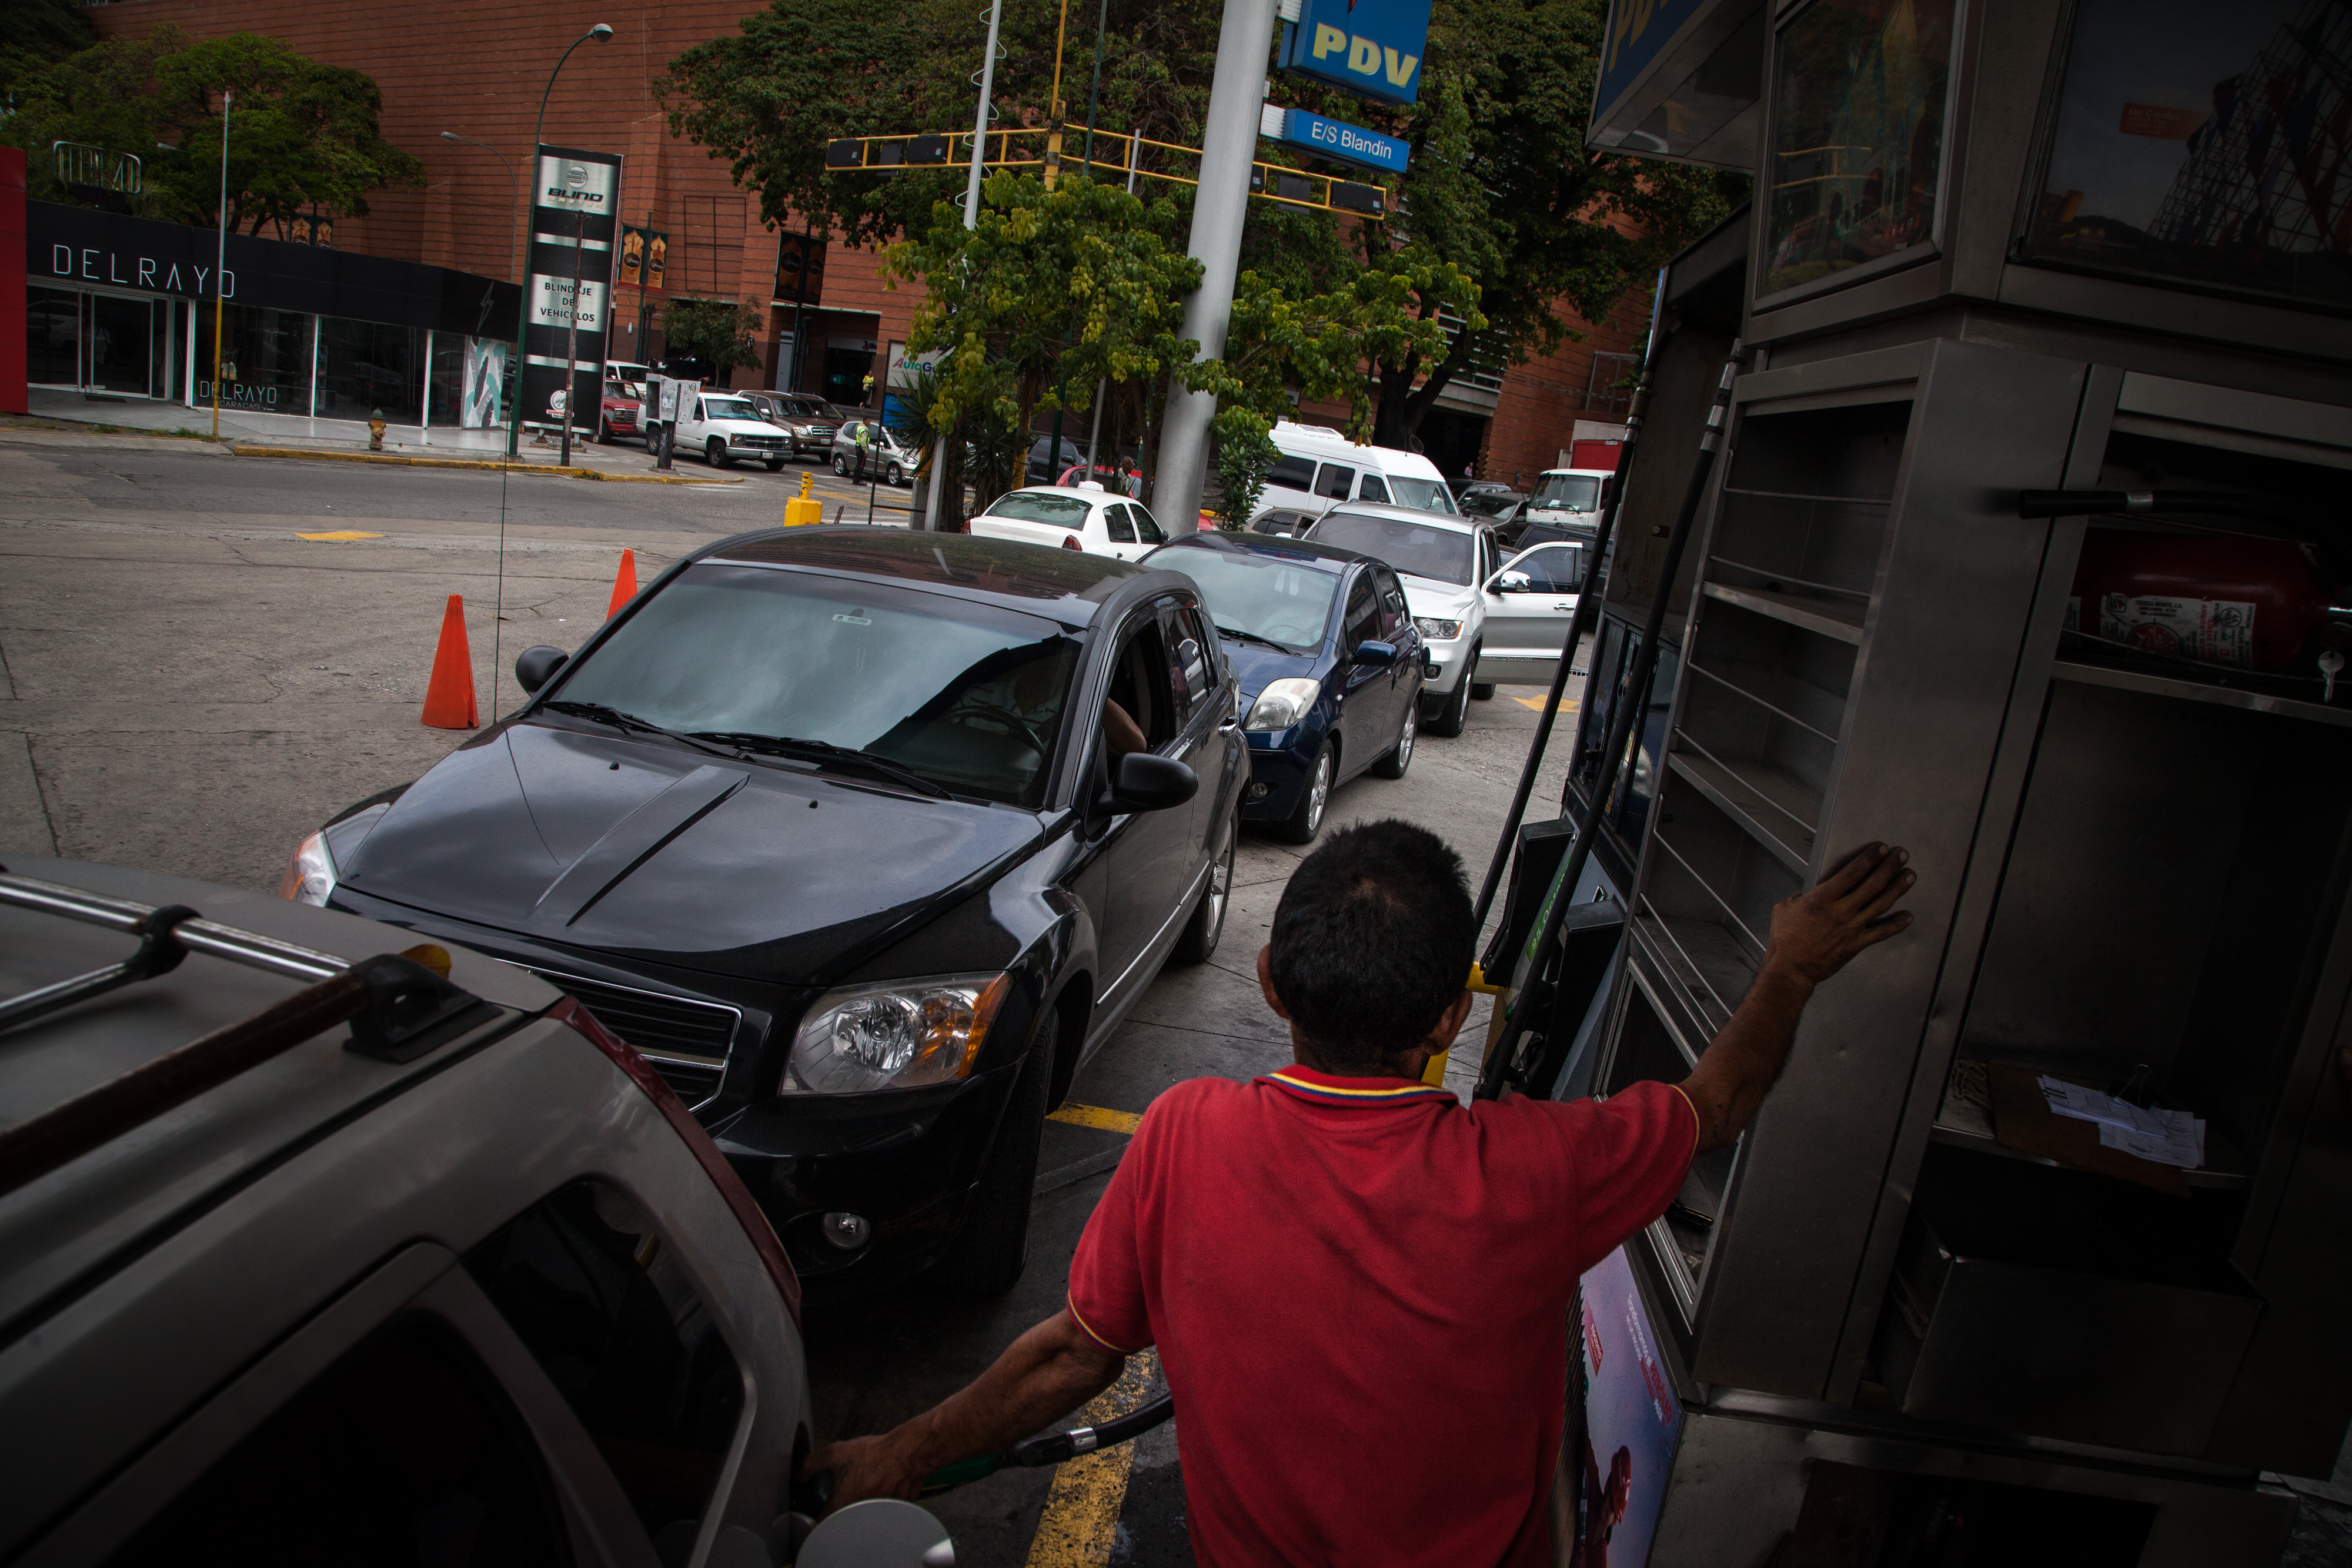 Gas Stations As Venezuela's Fuel Shortage Is Getting Worse